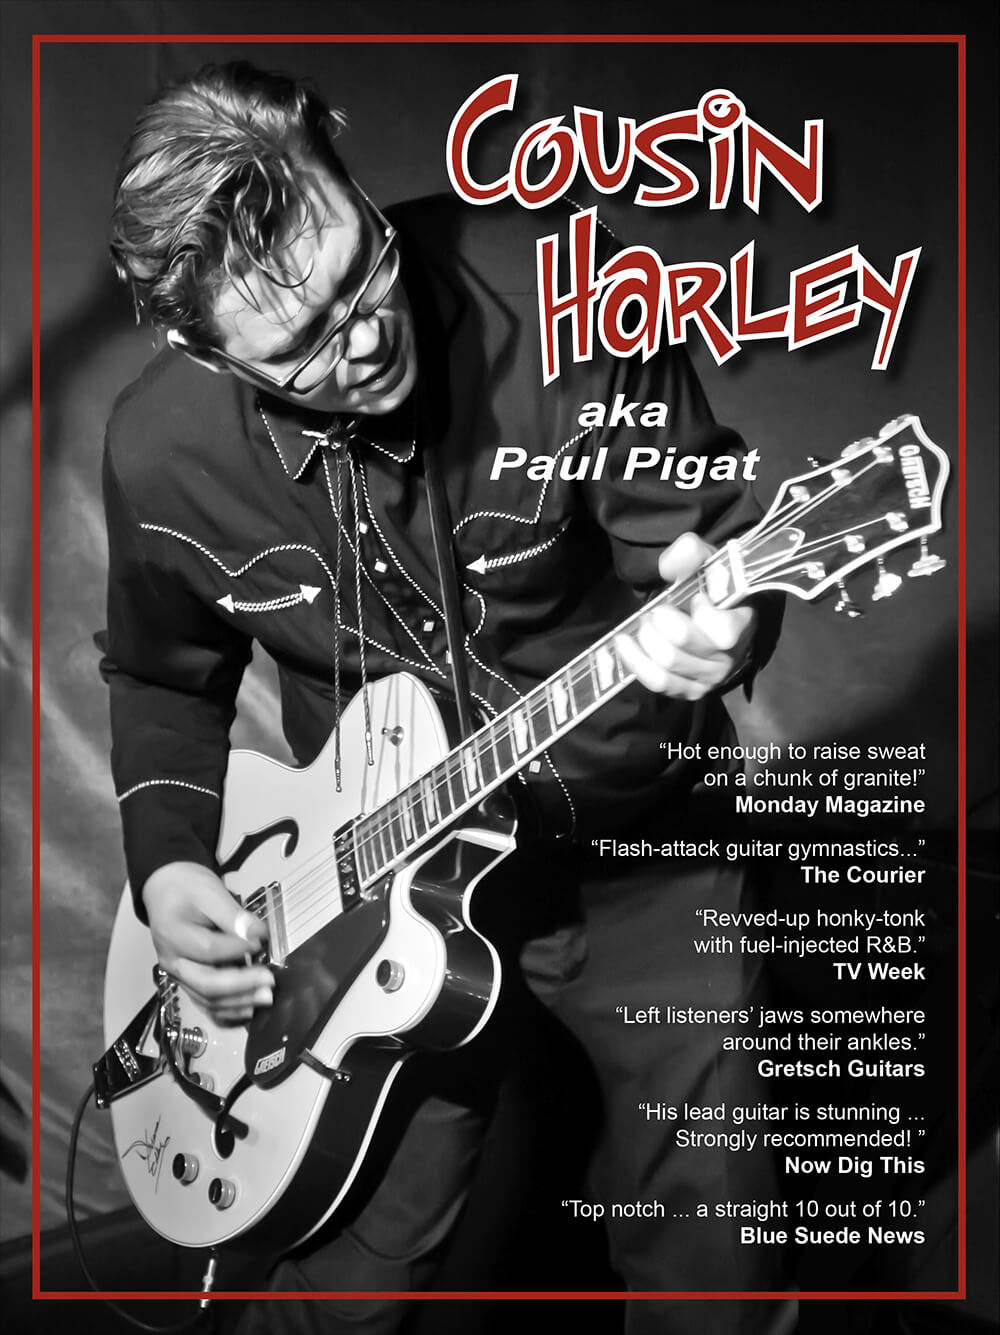 Epk cousin harley boxcar campfire paul pigat click image above to download pdf solutioingenieria Choice Image